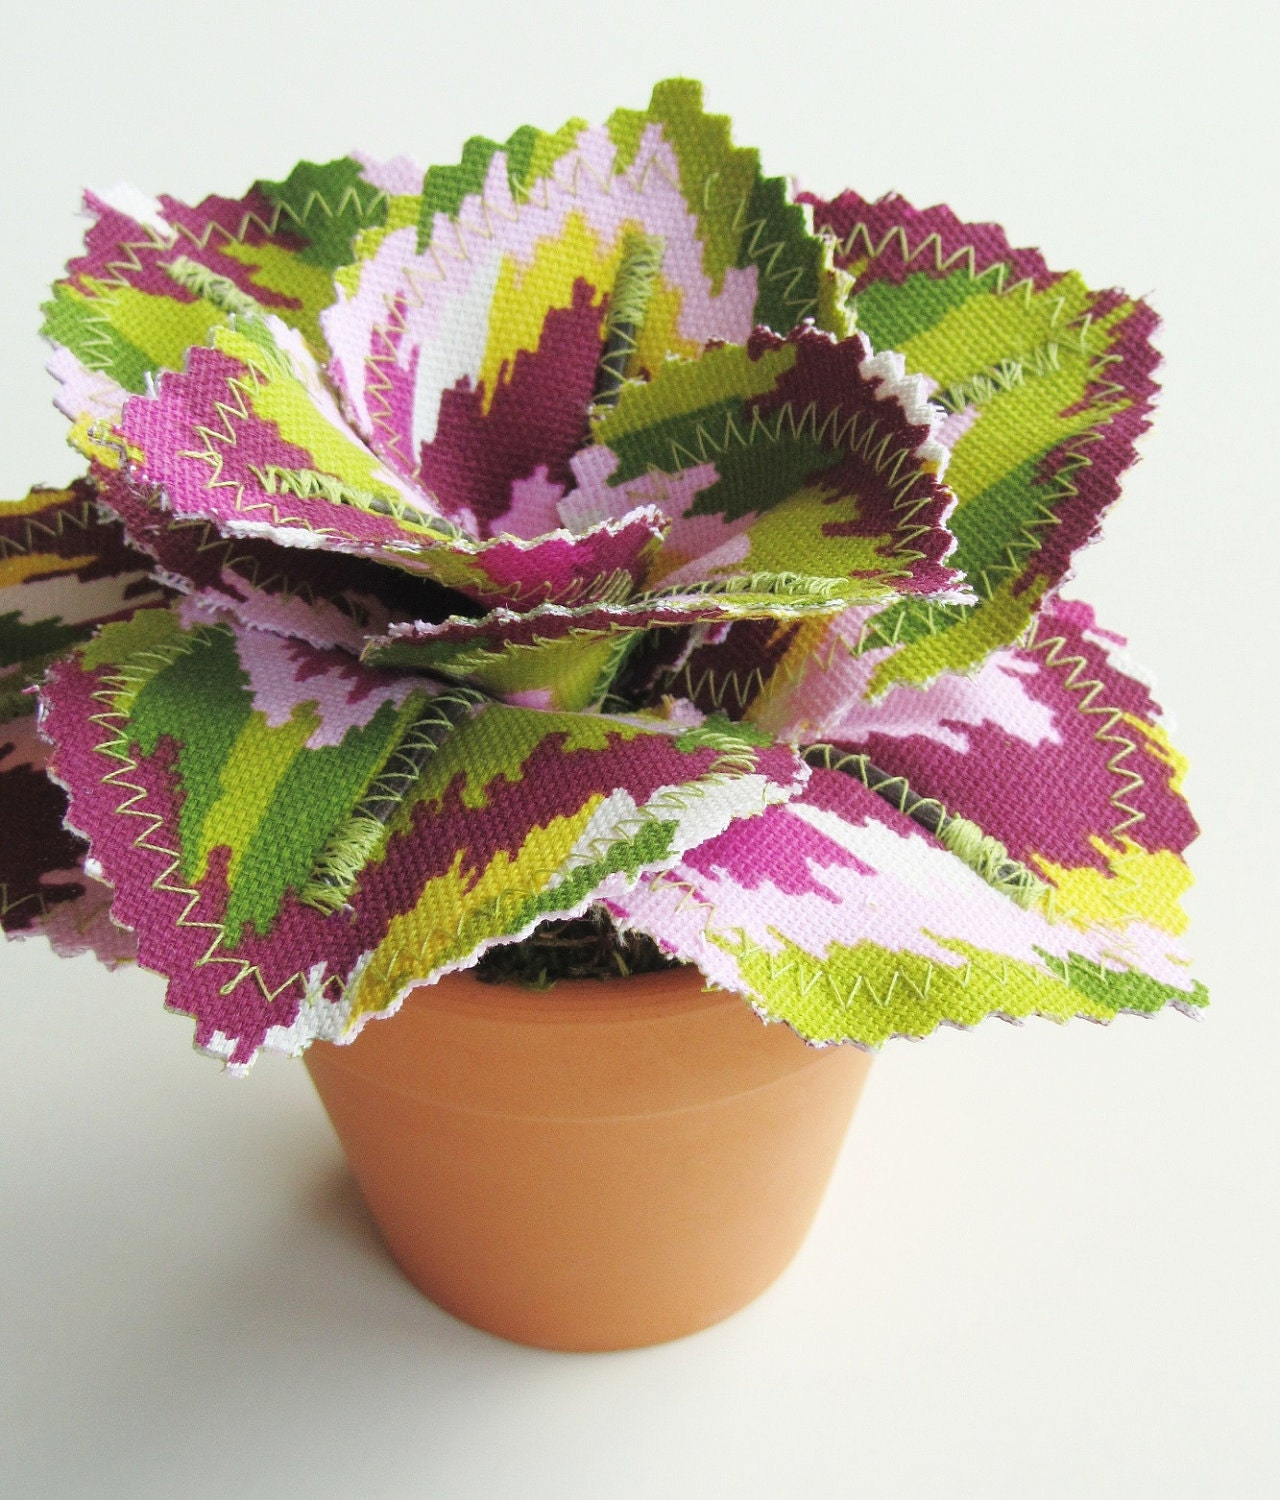 Fabric Leaf Potted Plant Cranberry Pink Lime Green By Janejoss